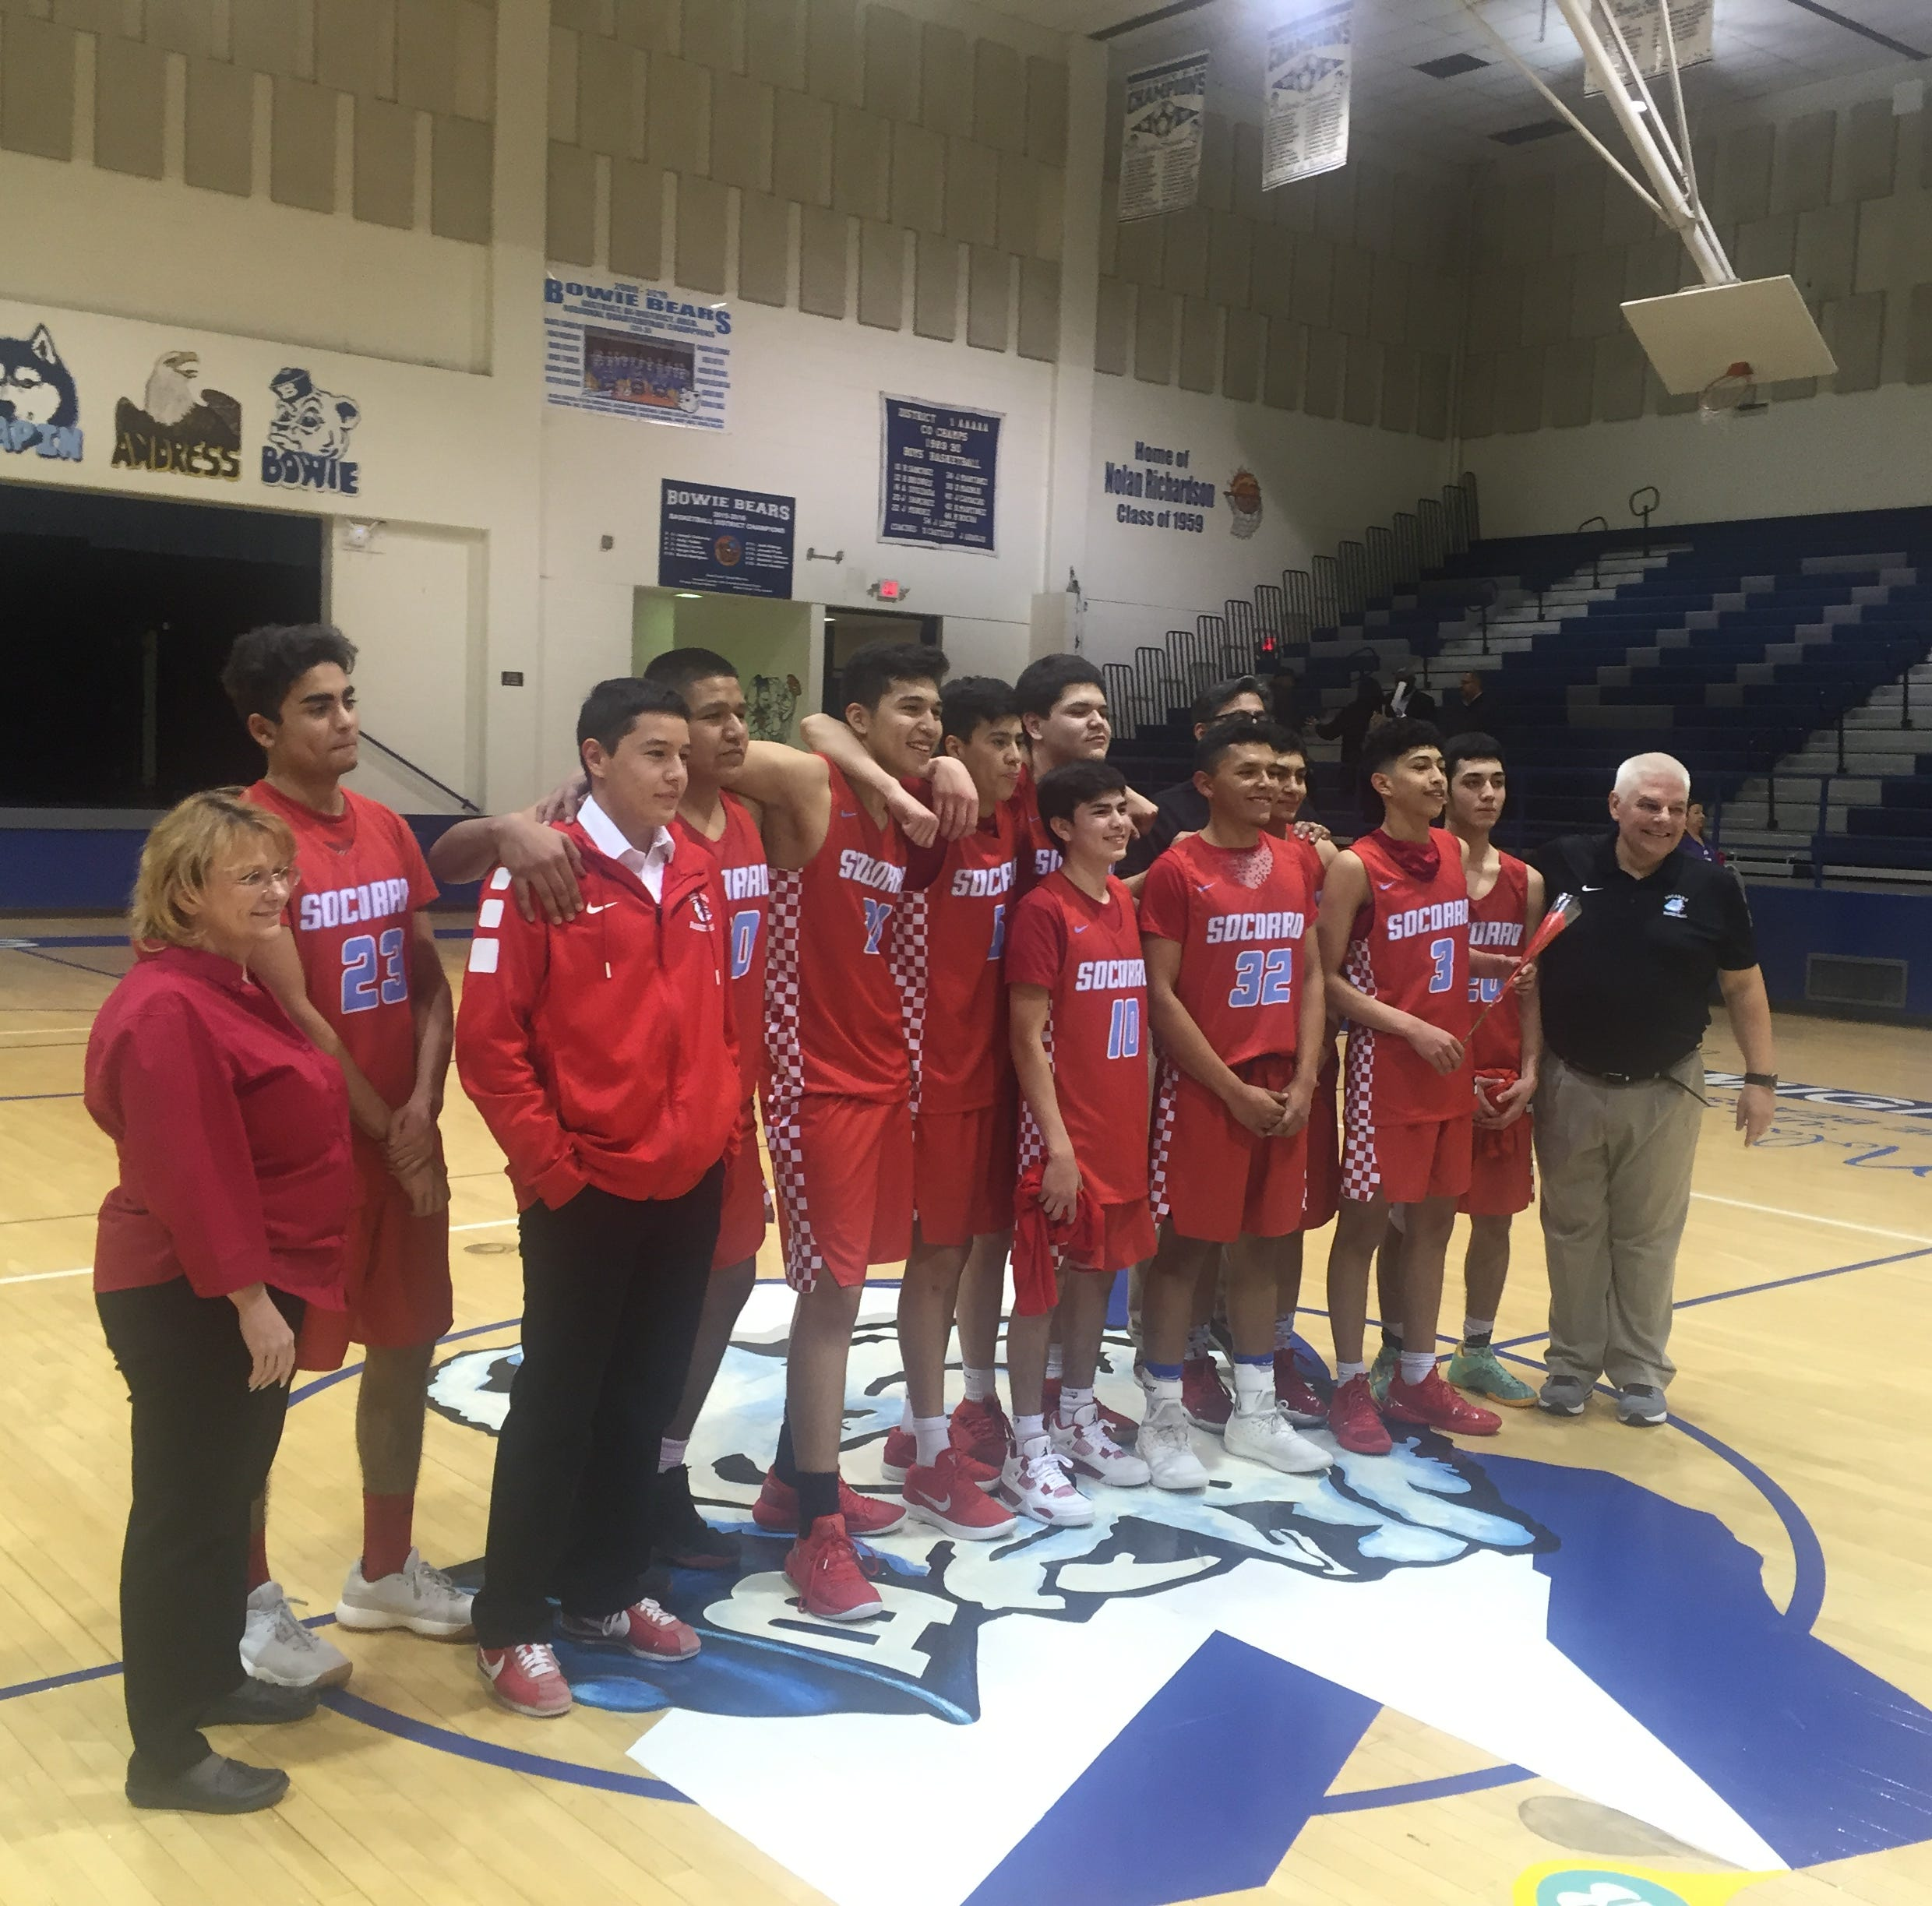 The Socorro Bulldogs pose for a photo after clinching a playoff berth in the state basketball playoffs for the first time since 1997.